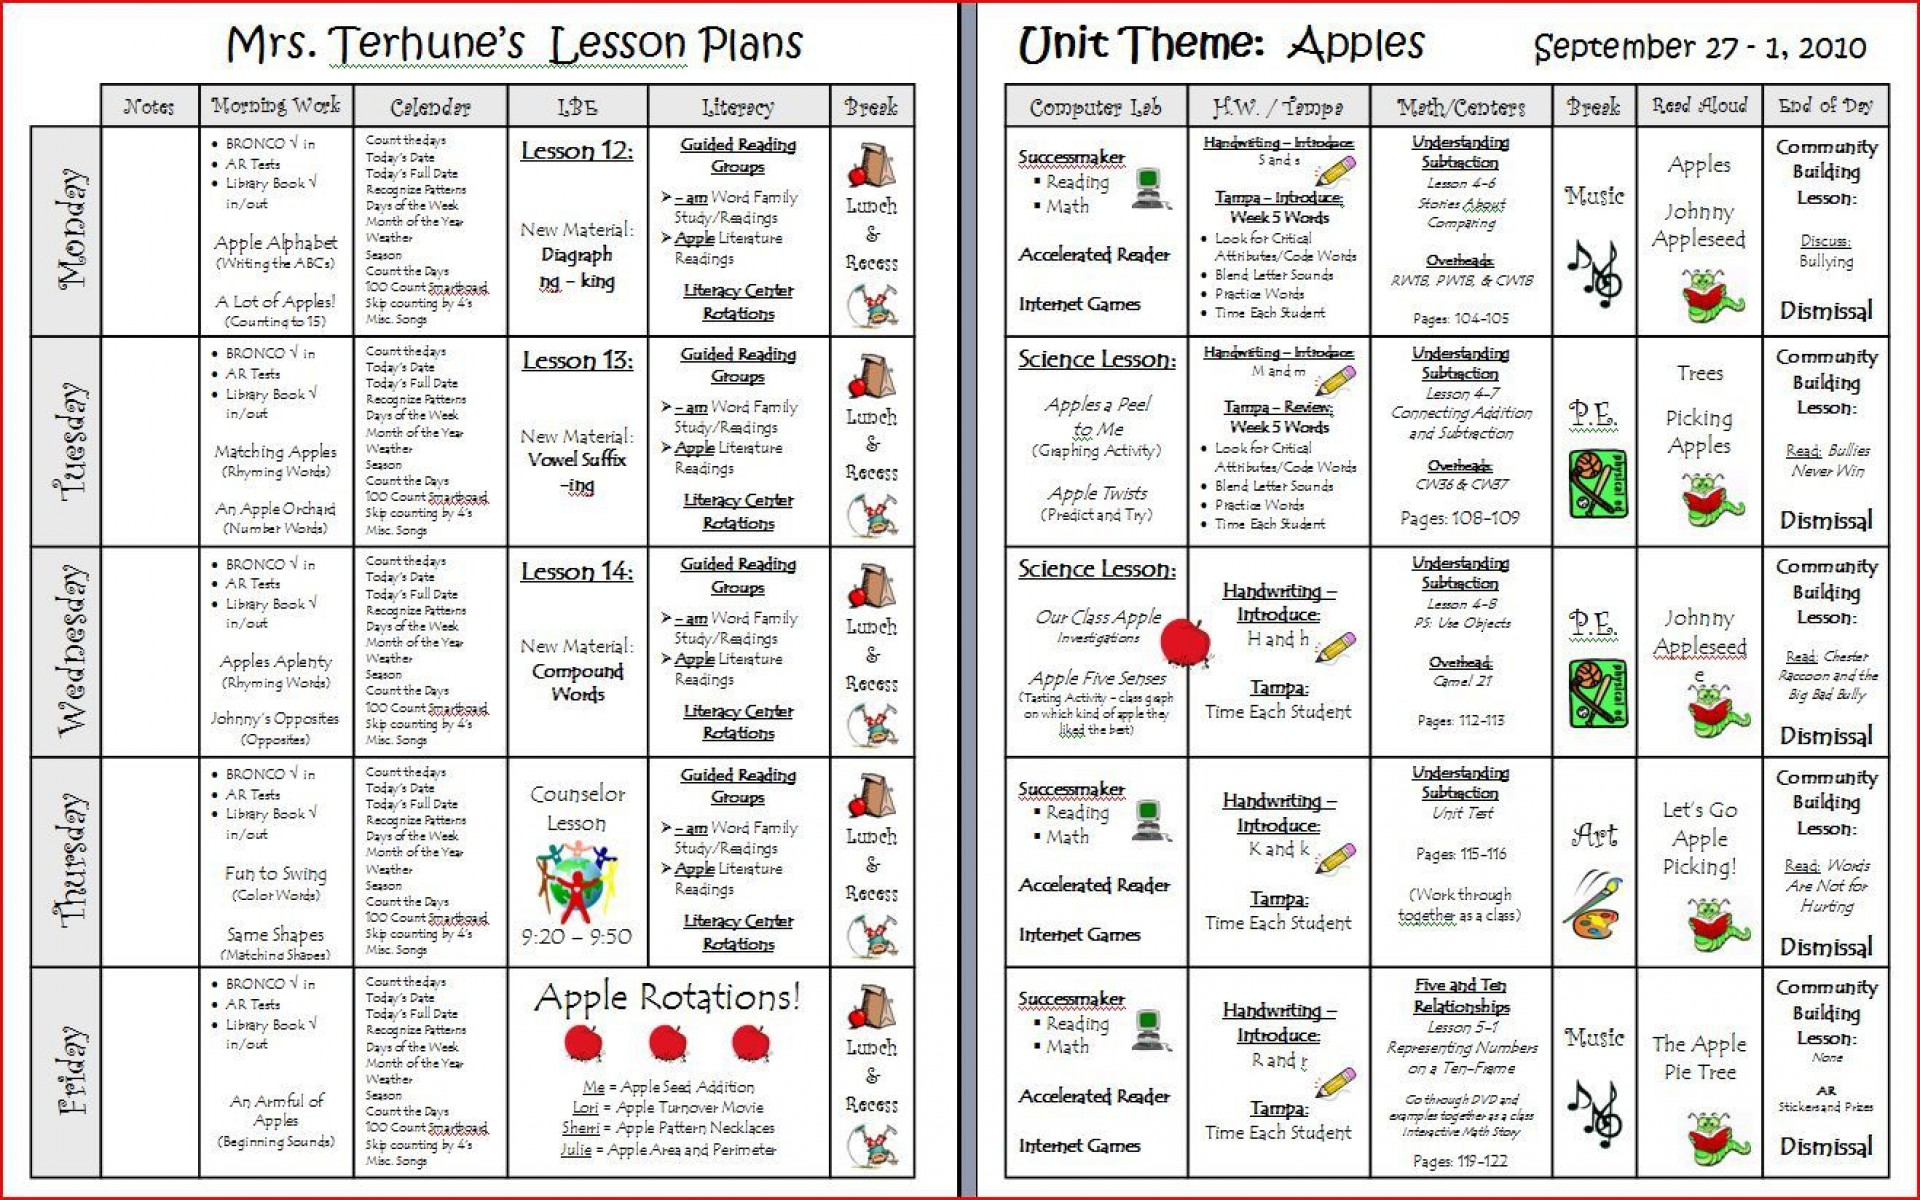 000 Stunning Downloadable Lesson Plan Template Inspiration  Printable Weekly Pdf Free Word1920